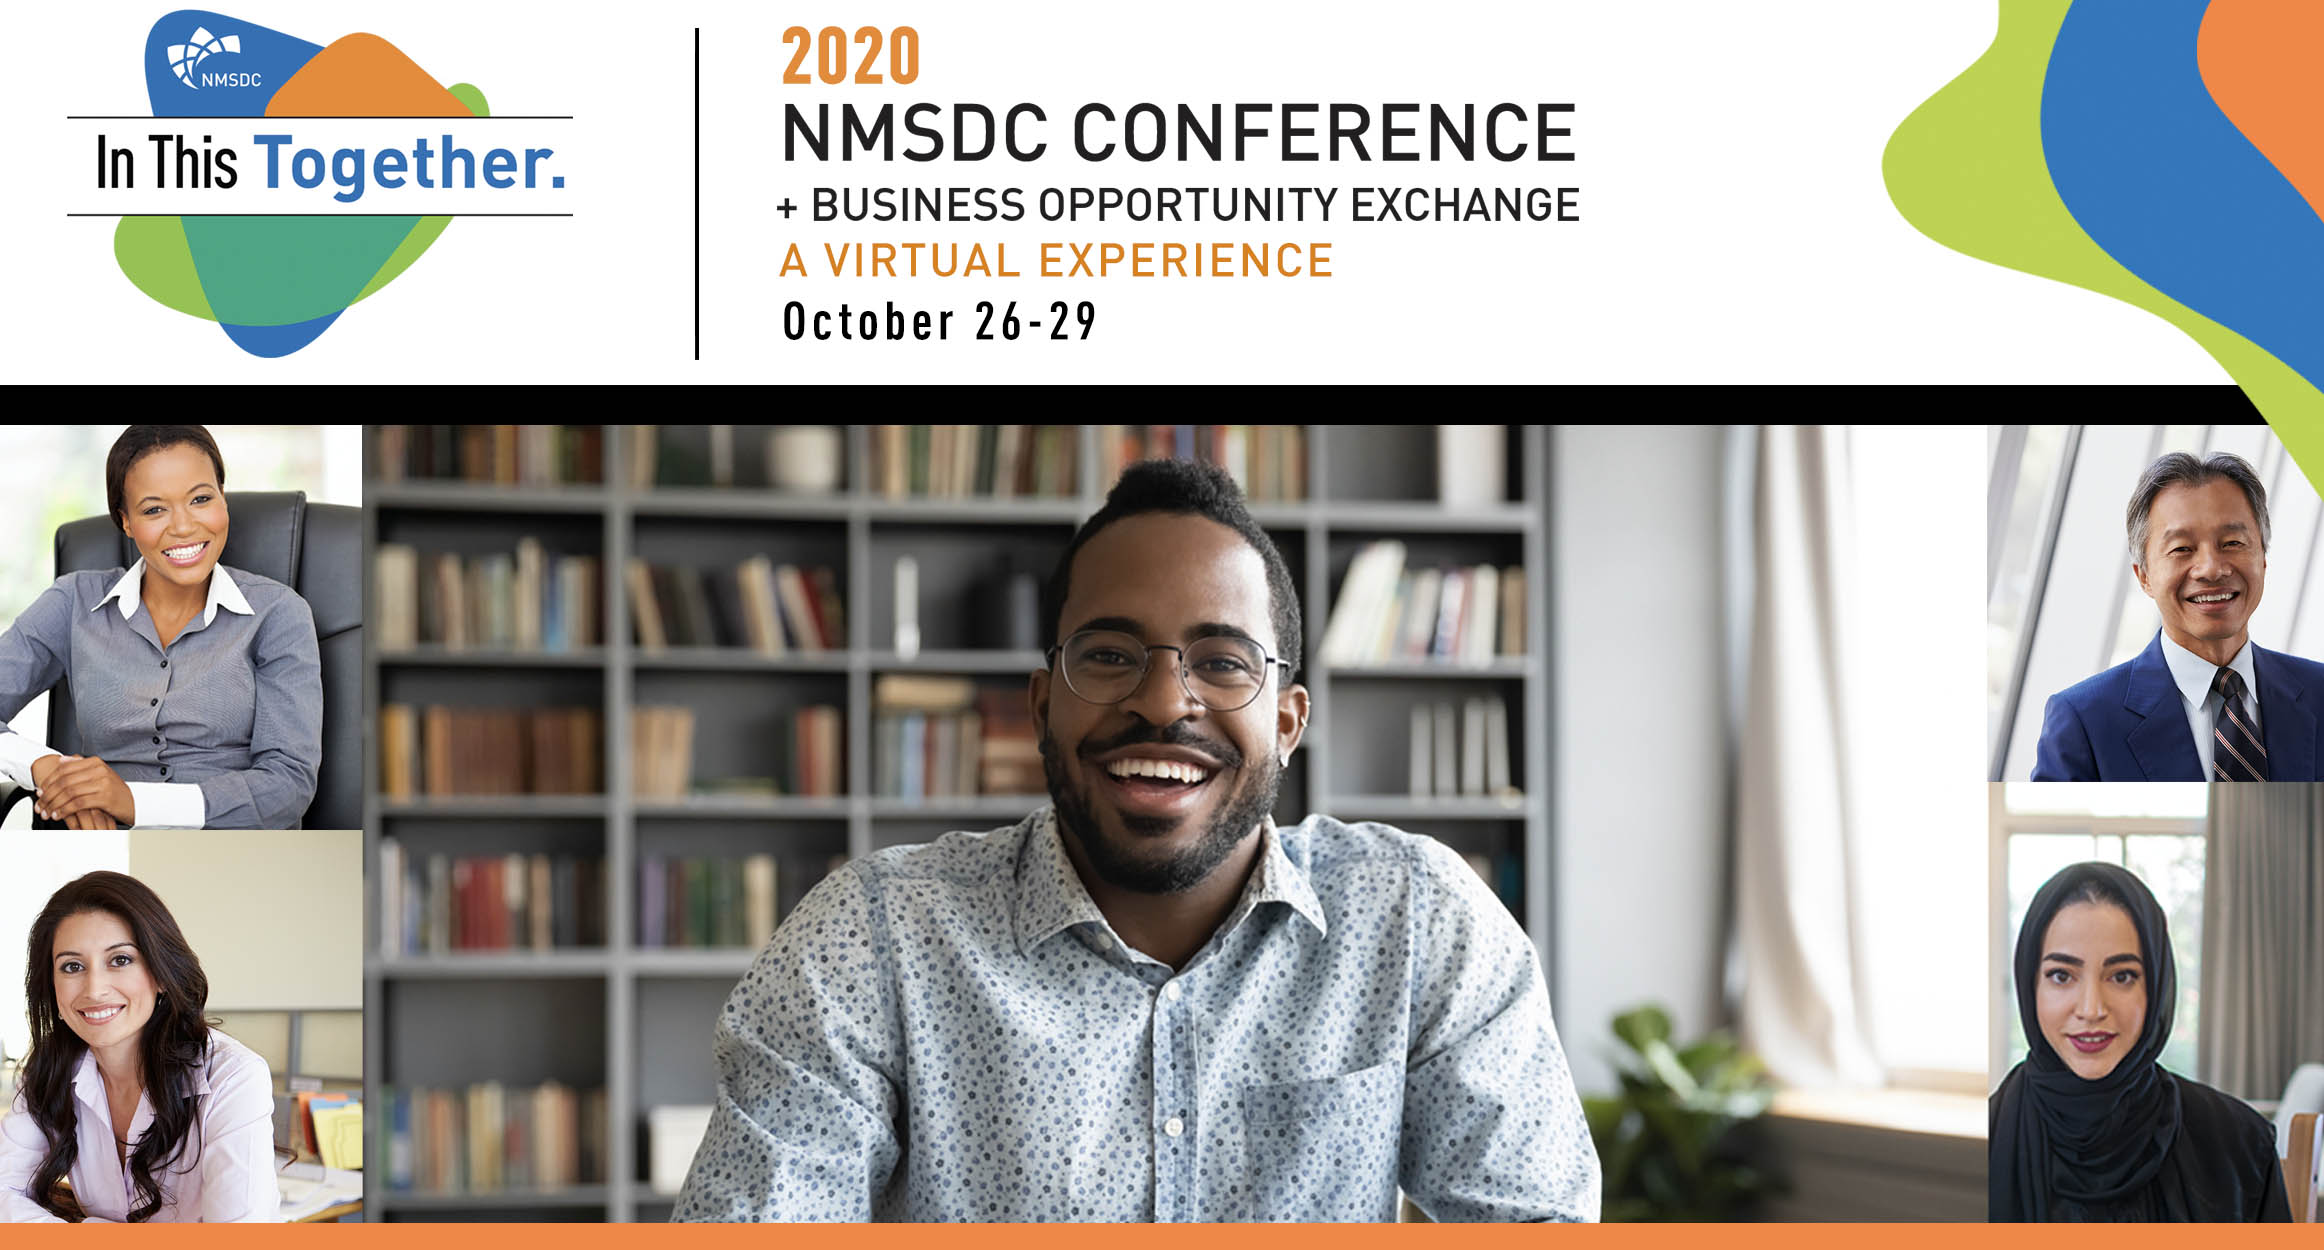 2020 NMSDC Virtual Conference